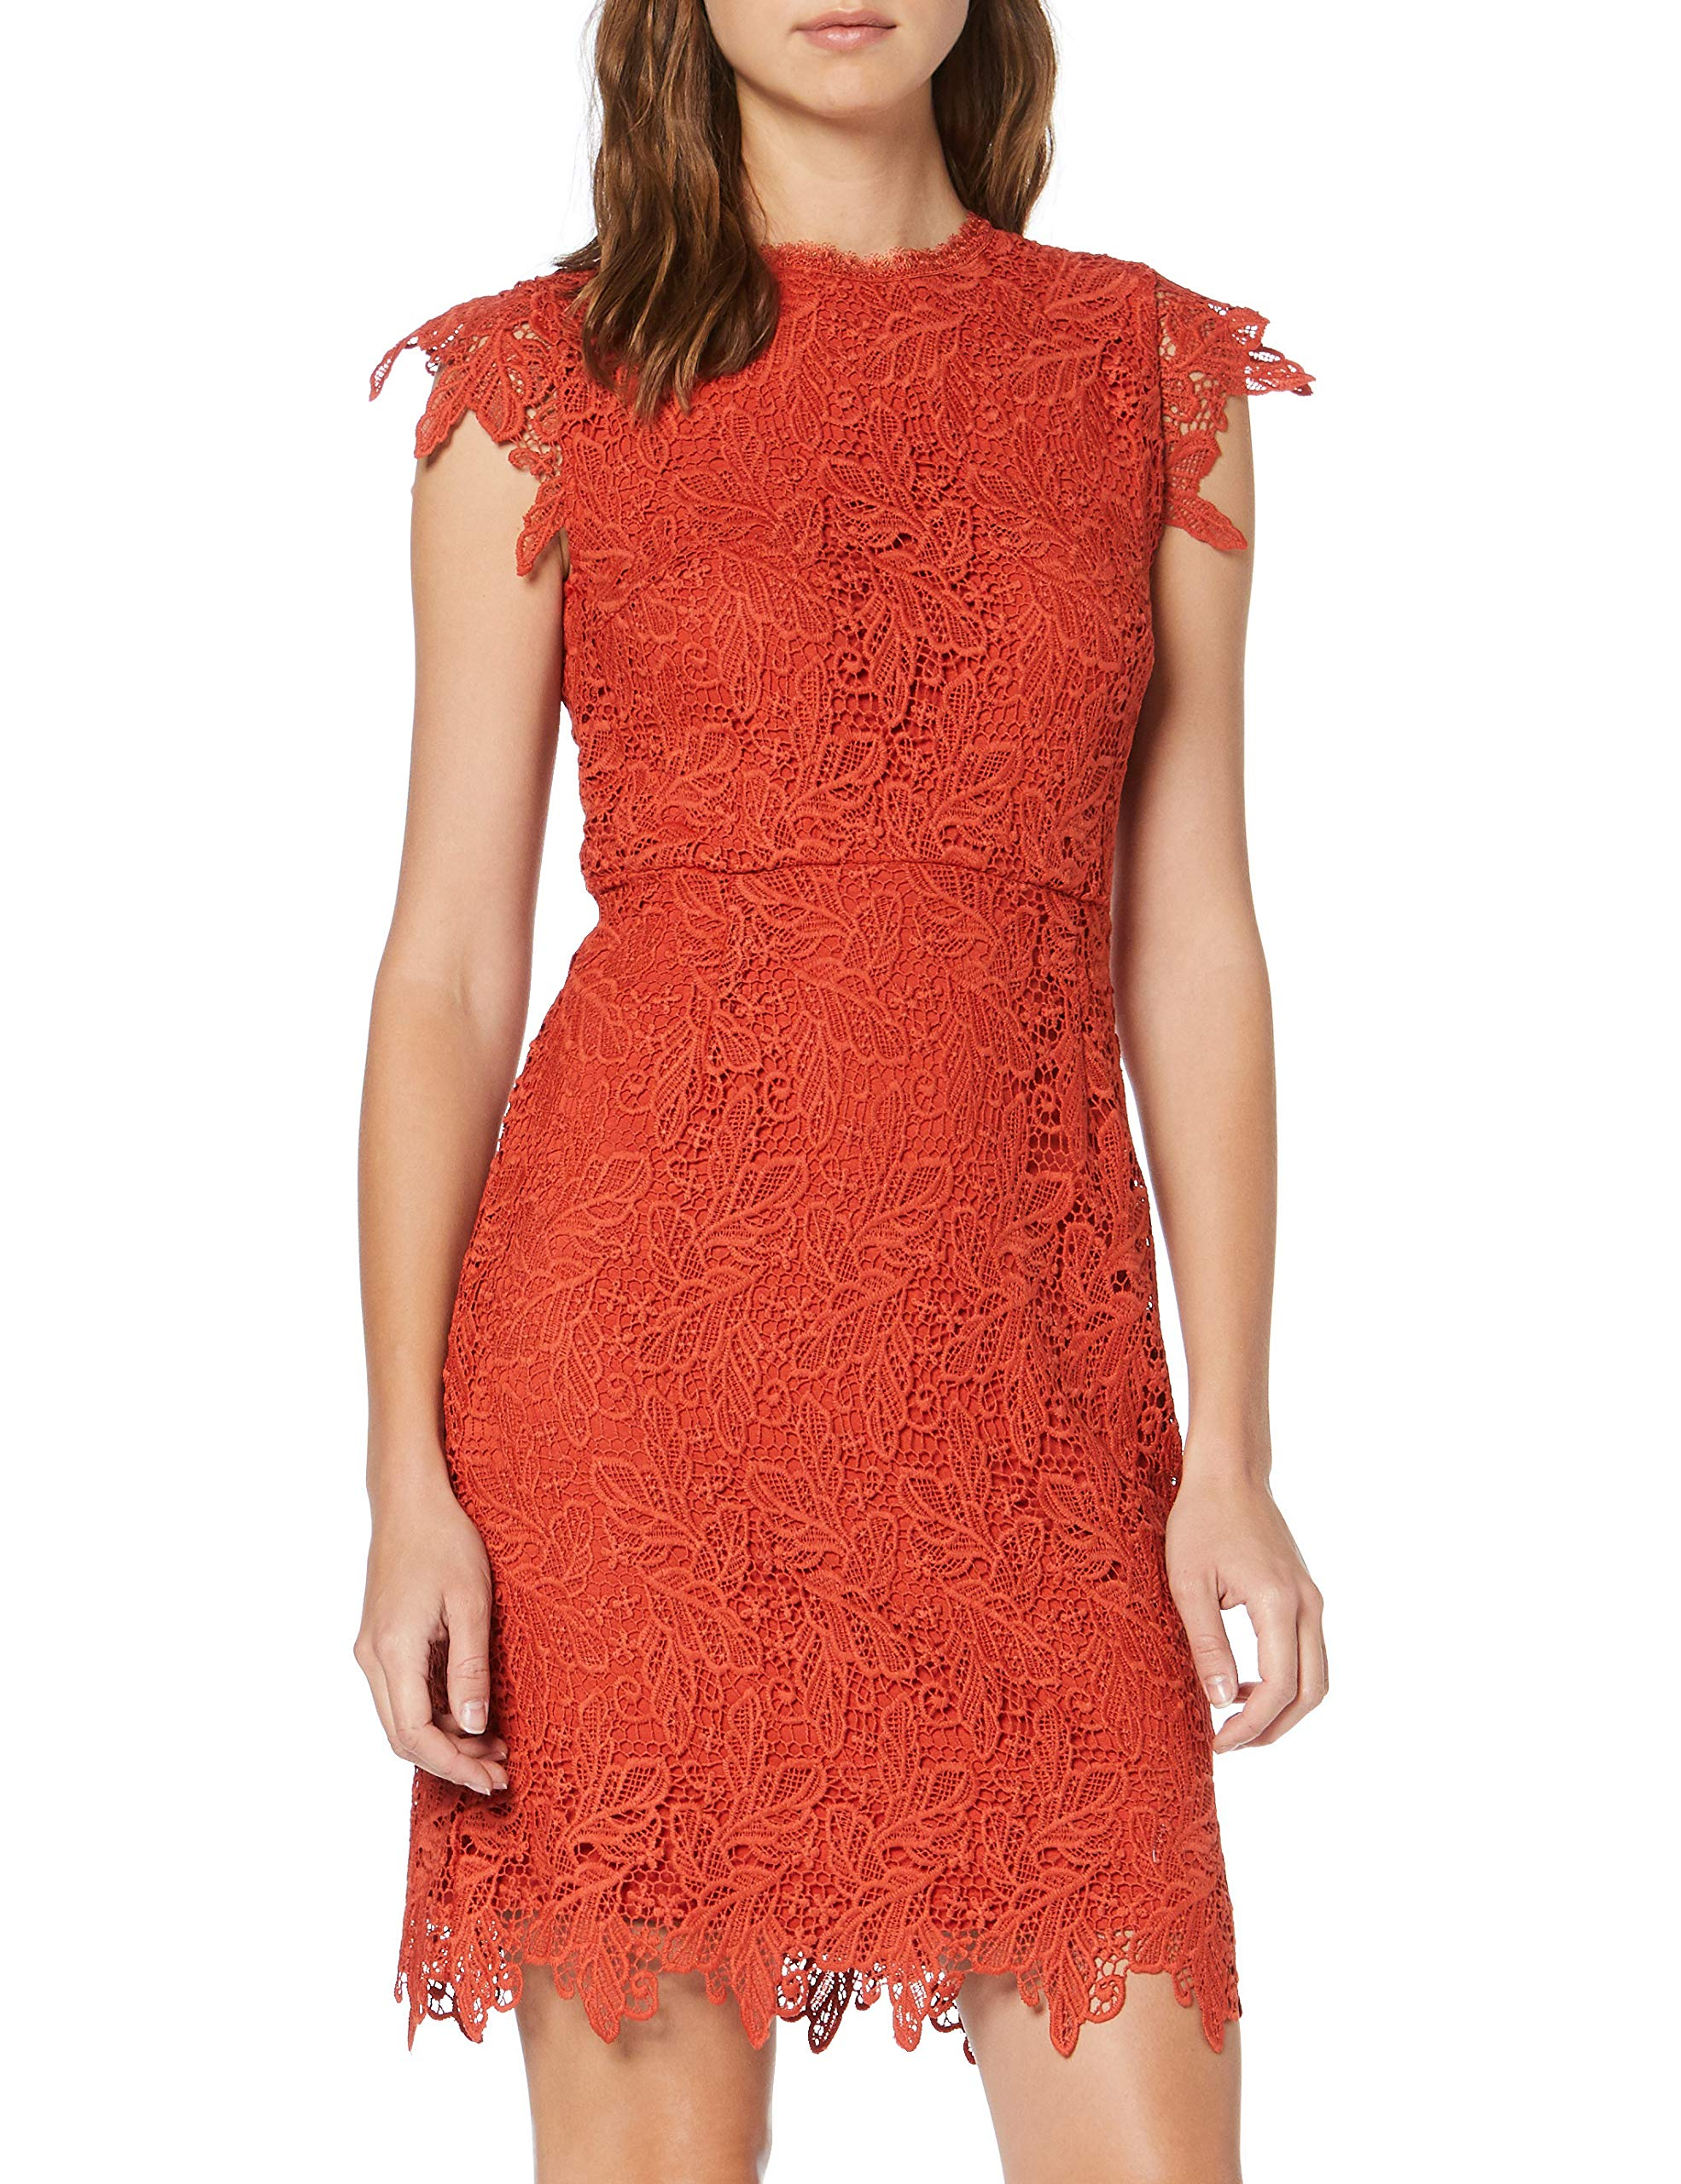 481001 16604 Taifun Fabricant36Femme 605038taille Red RobeRougespicy 3Ac54jqRL